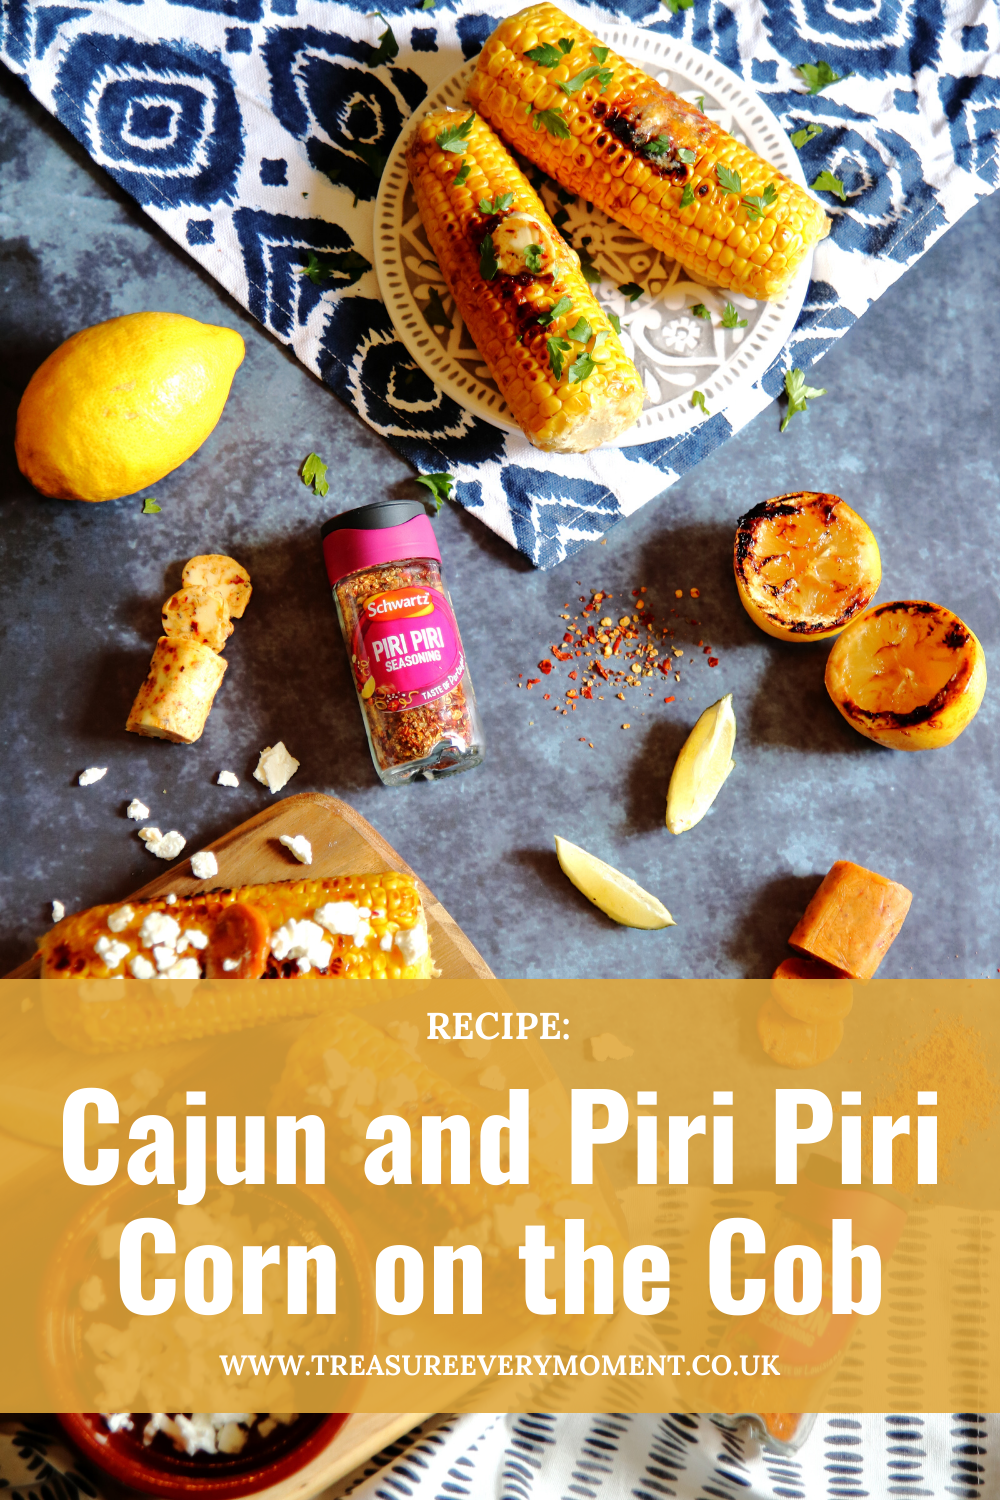 BBQ RECIPE: Cajun and Piri Piri Corn on the Cob